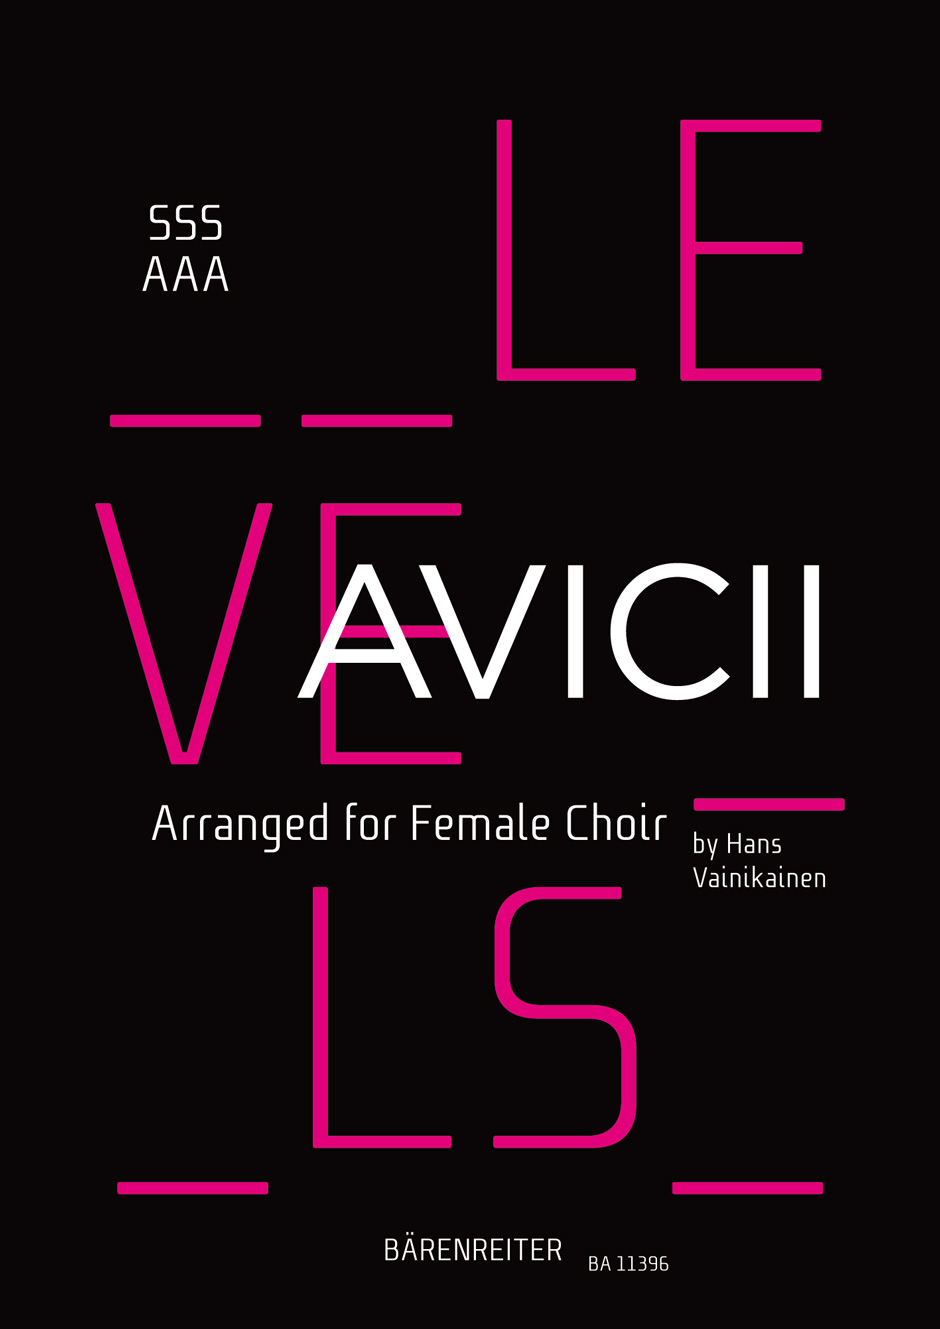 Levels. Arranged for Female Choir (SSSAAA)